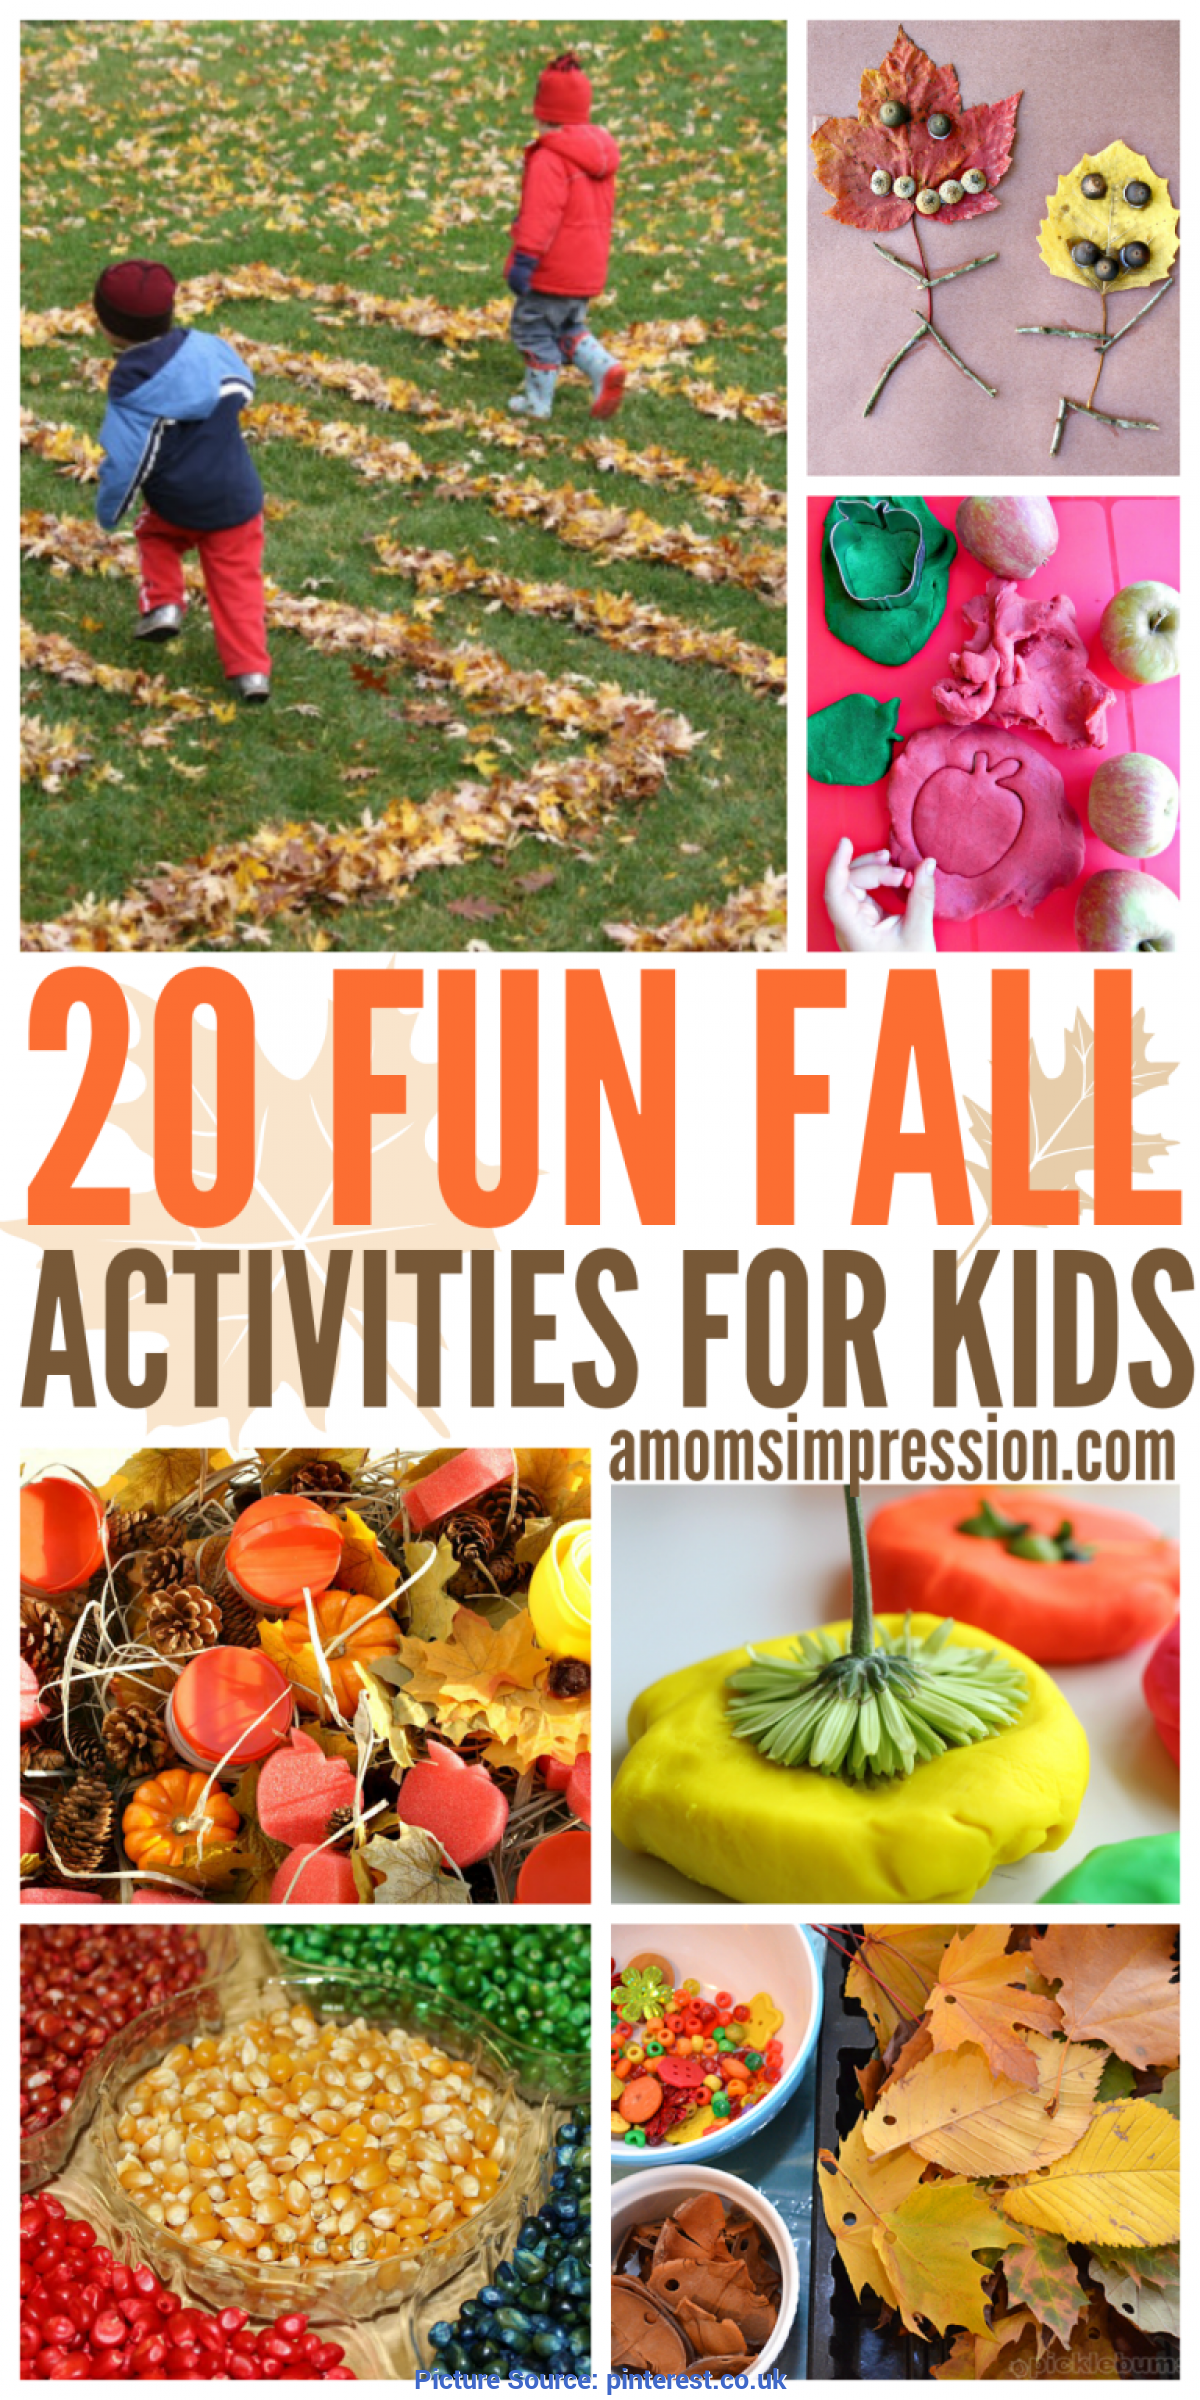 Typical Fun Fall Activities For Kids 20 Fun Fall Activities For Kids | Fun Fall Activities, Outdoo